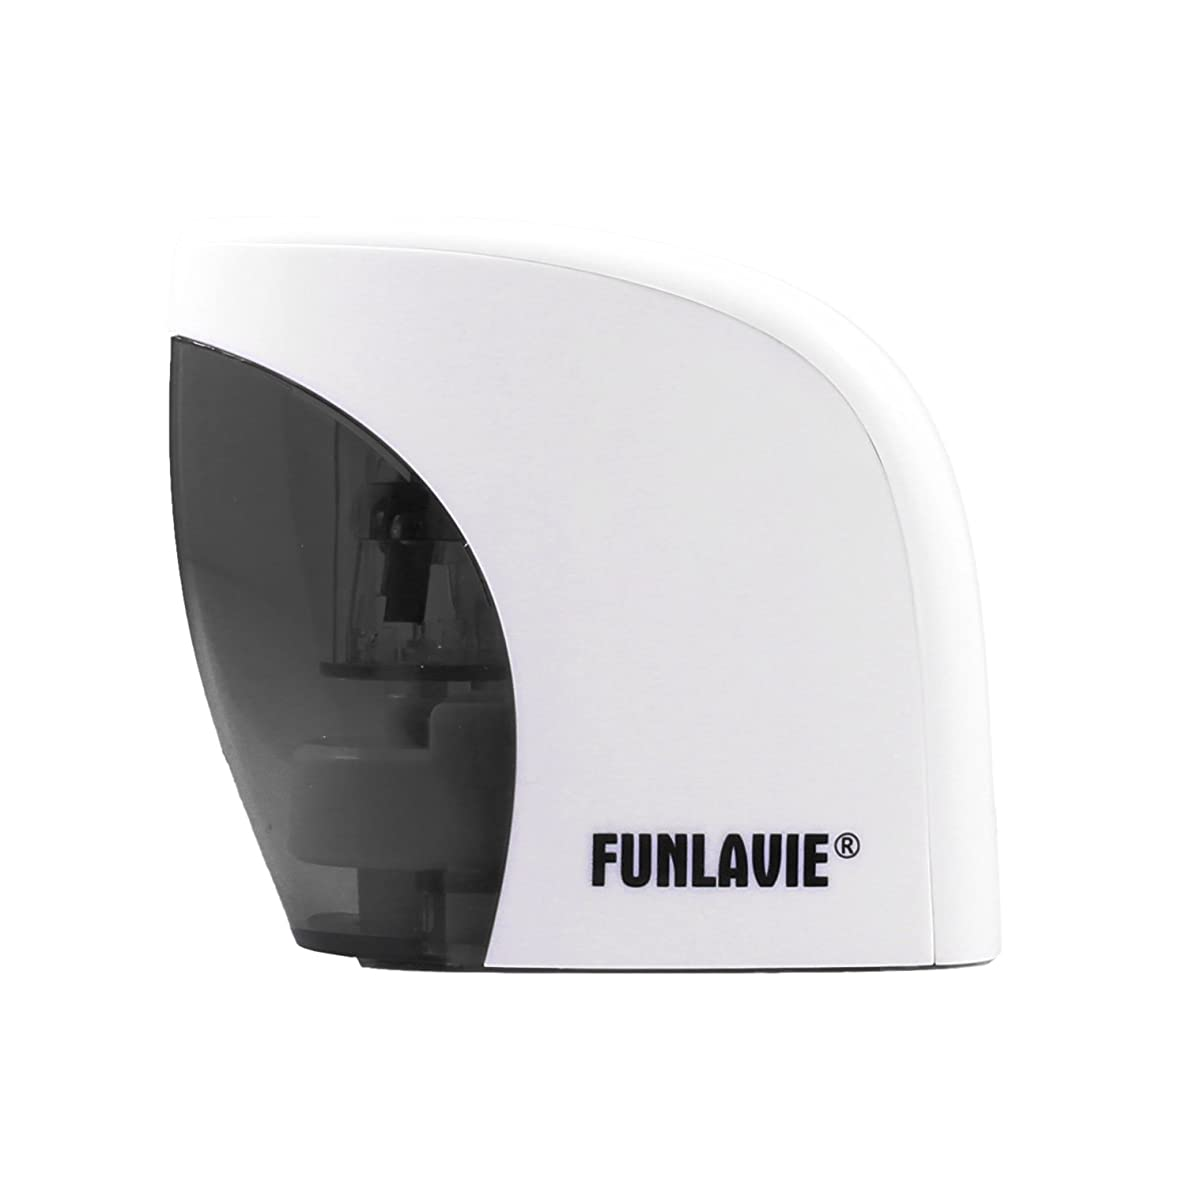 Electric Pencil Sharpener Colored Pencils Sharpener Portable USB and Battery Operated Pencil Sharpener by FUNLAVIE